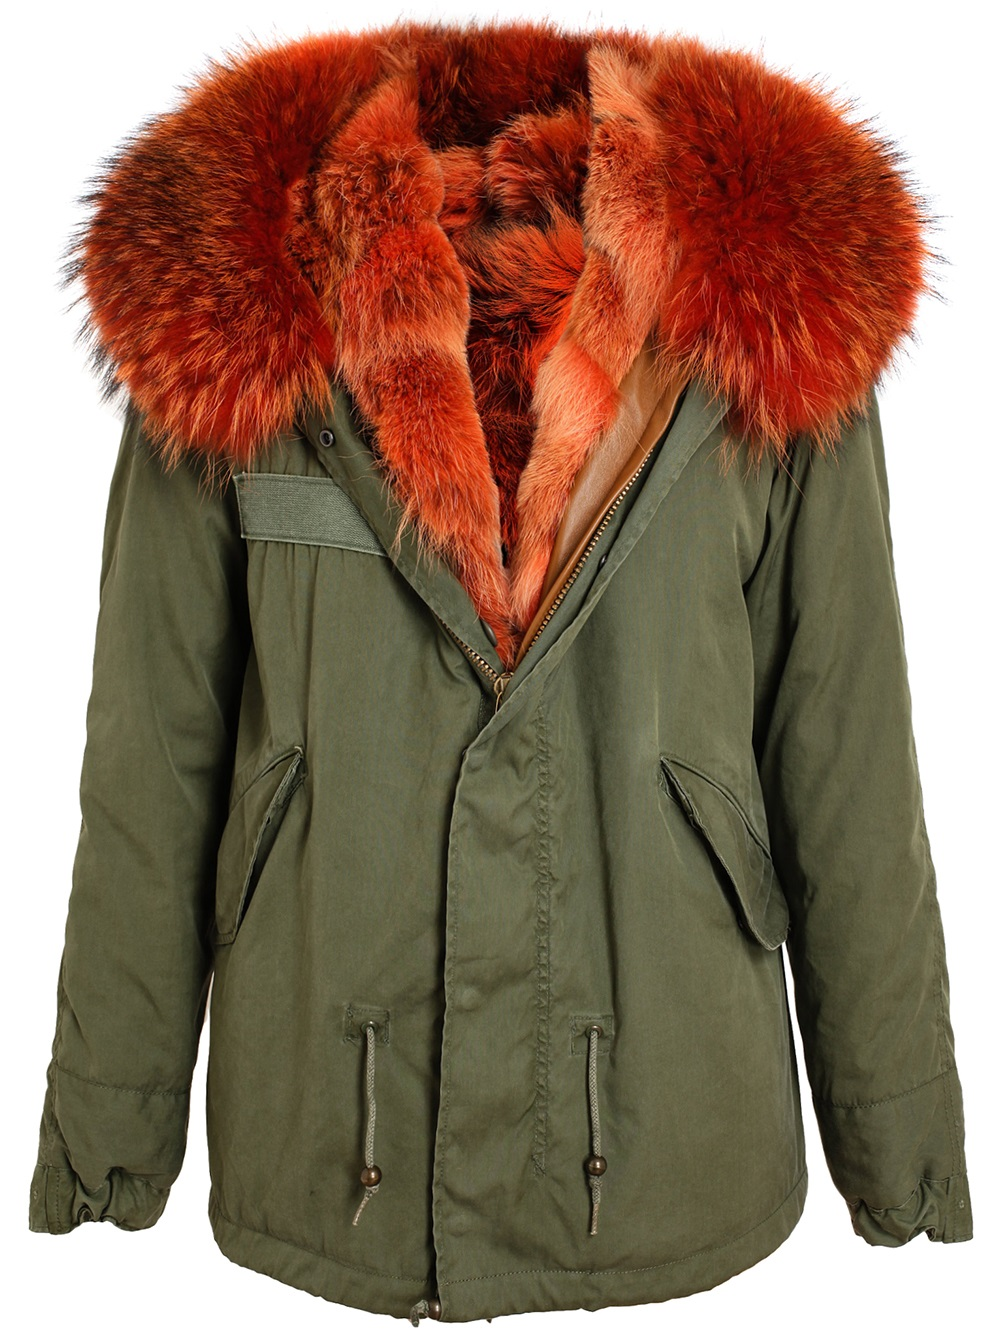 Green Parka With Red Fur Covu Clothing